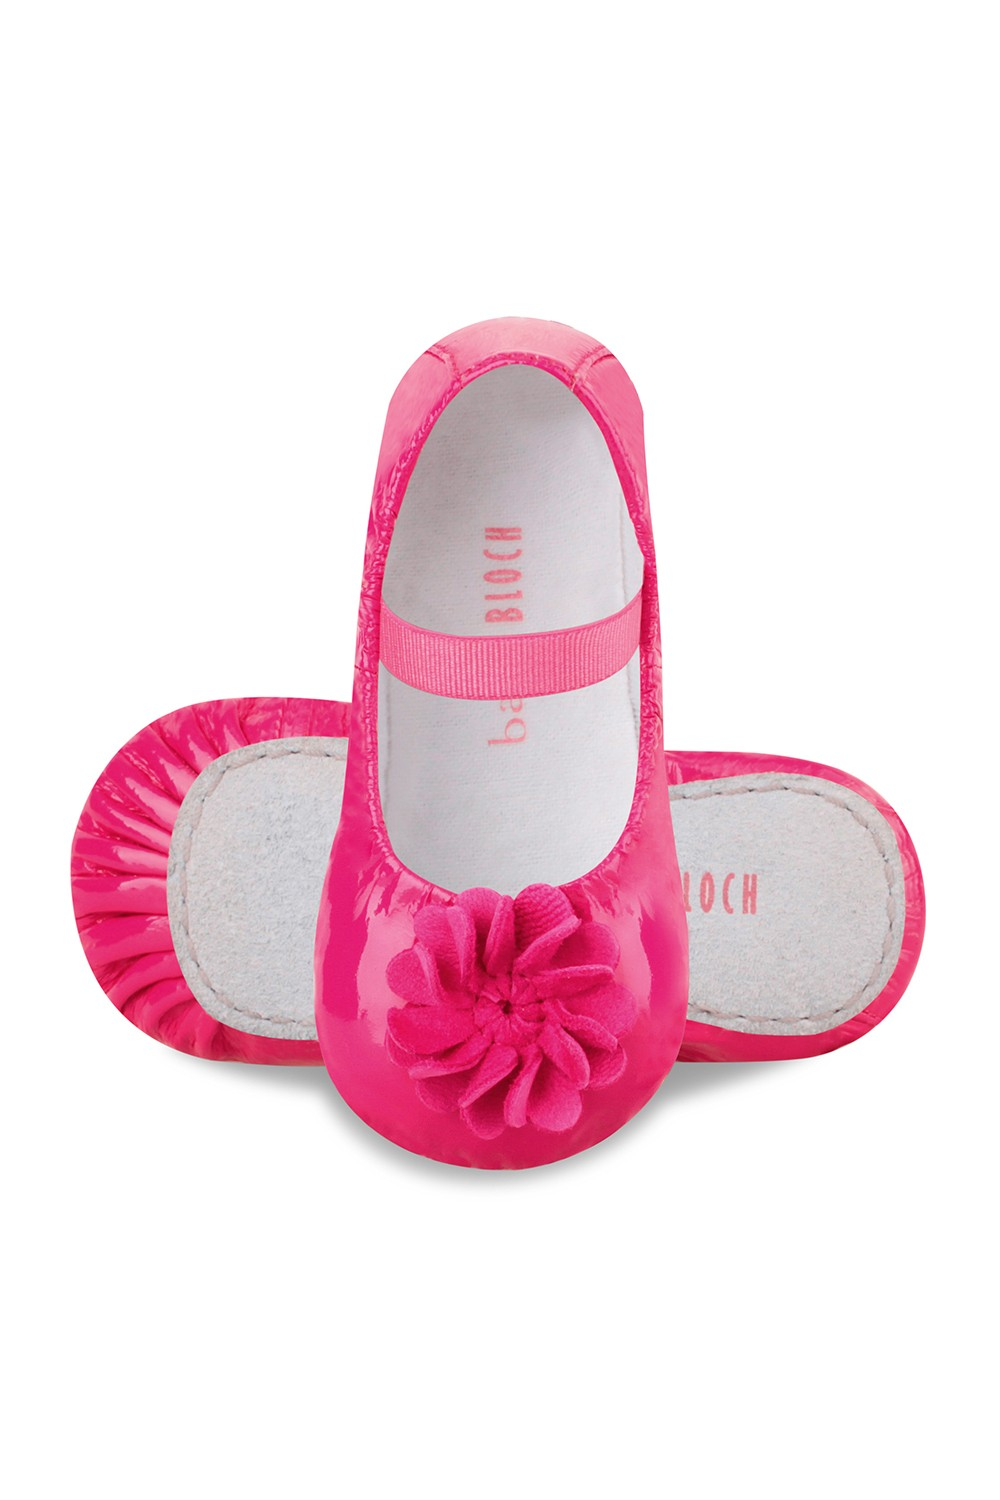 Florrie Baby Ballet Flat Babies Fashion Shoes